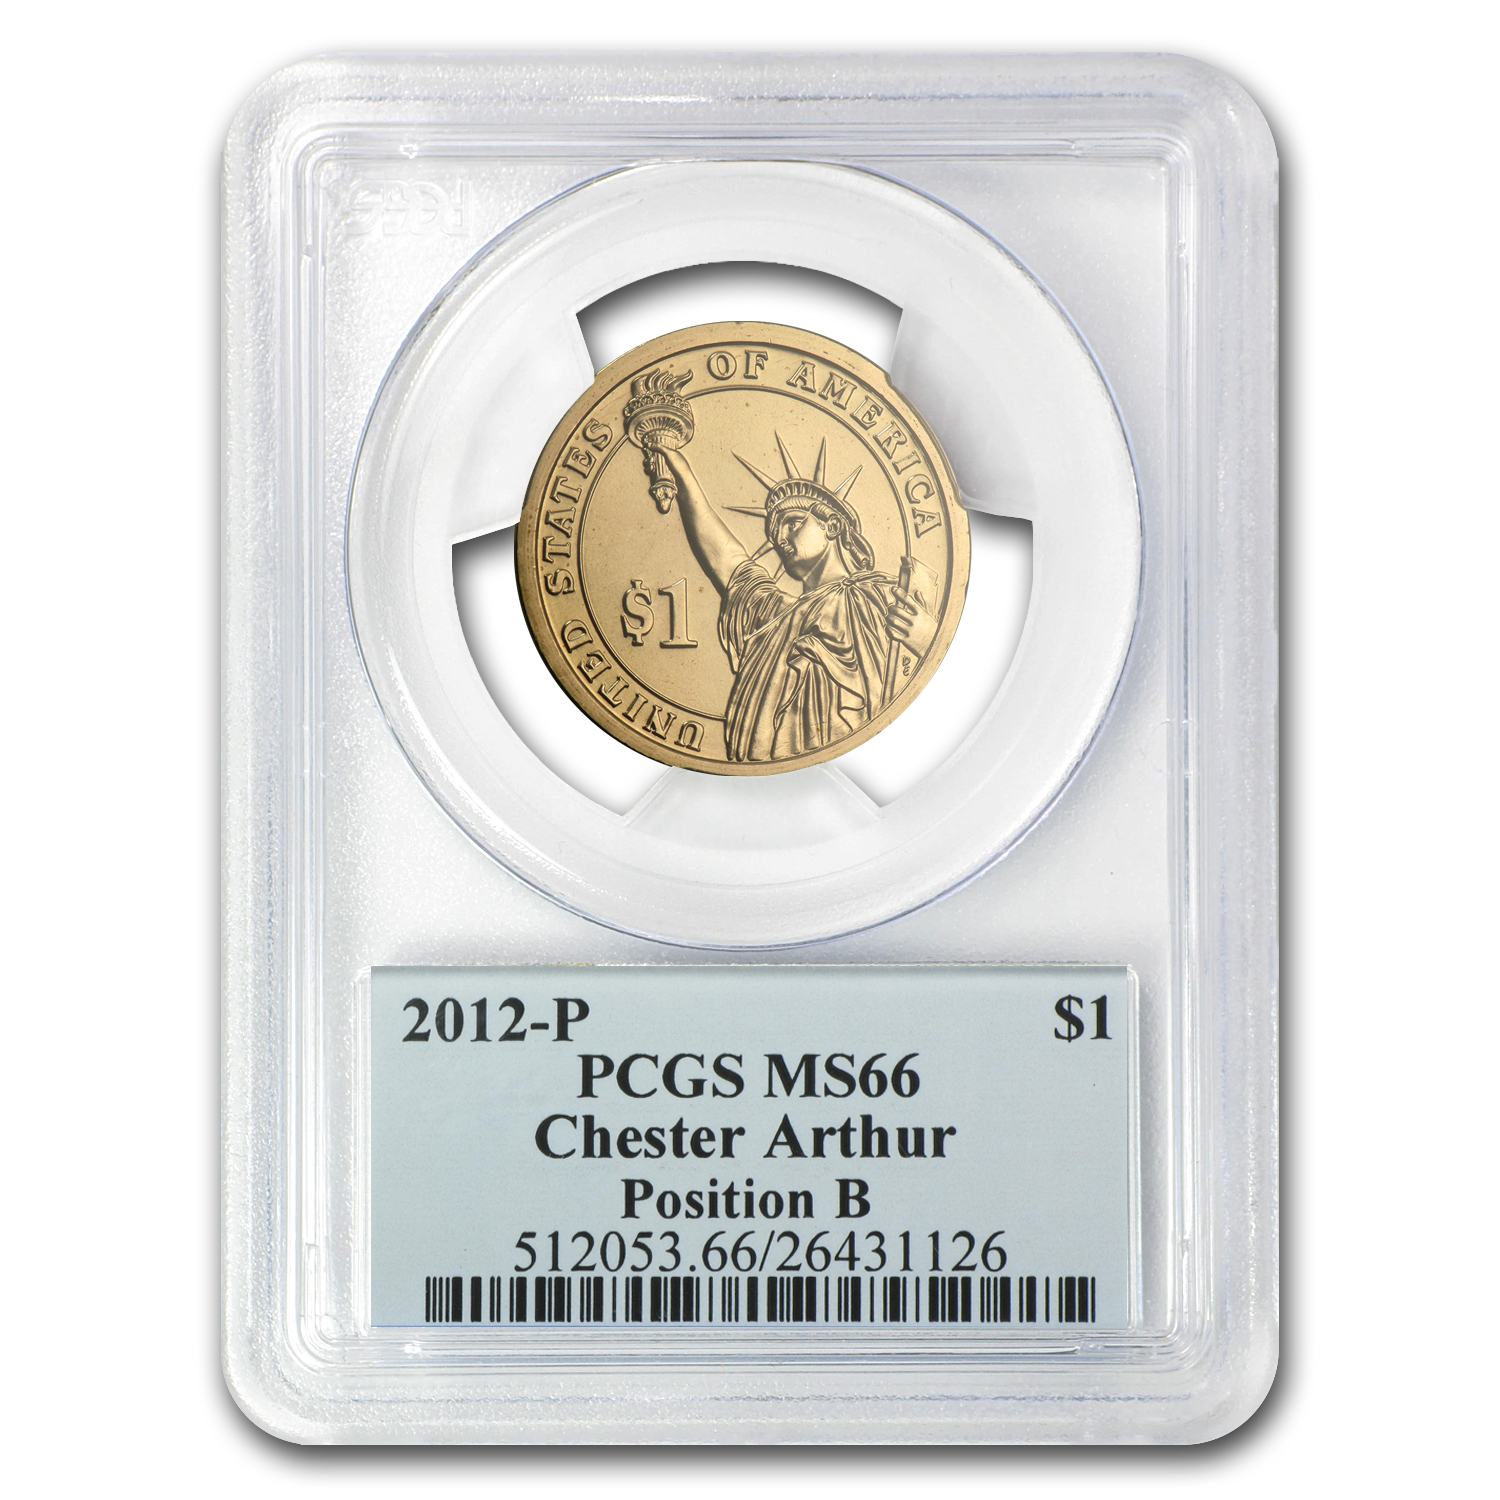 2012-P Chester Arthur Position B Presidential Dollar MS-66 PCGS